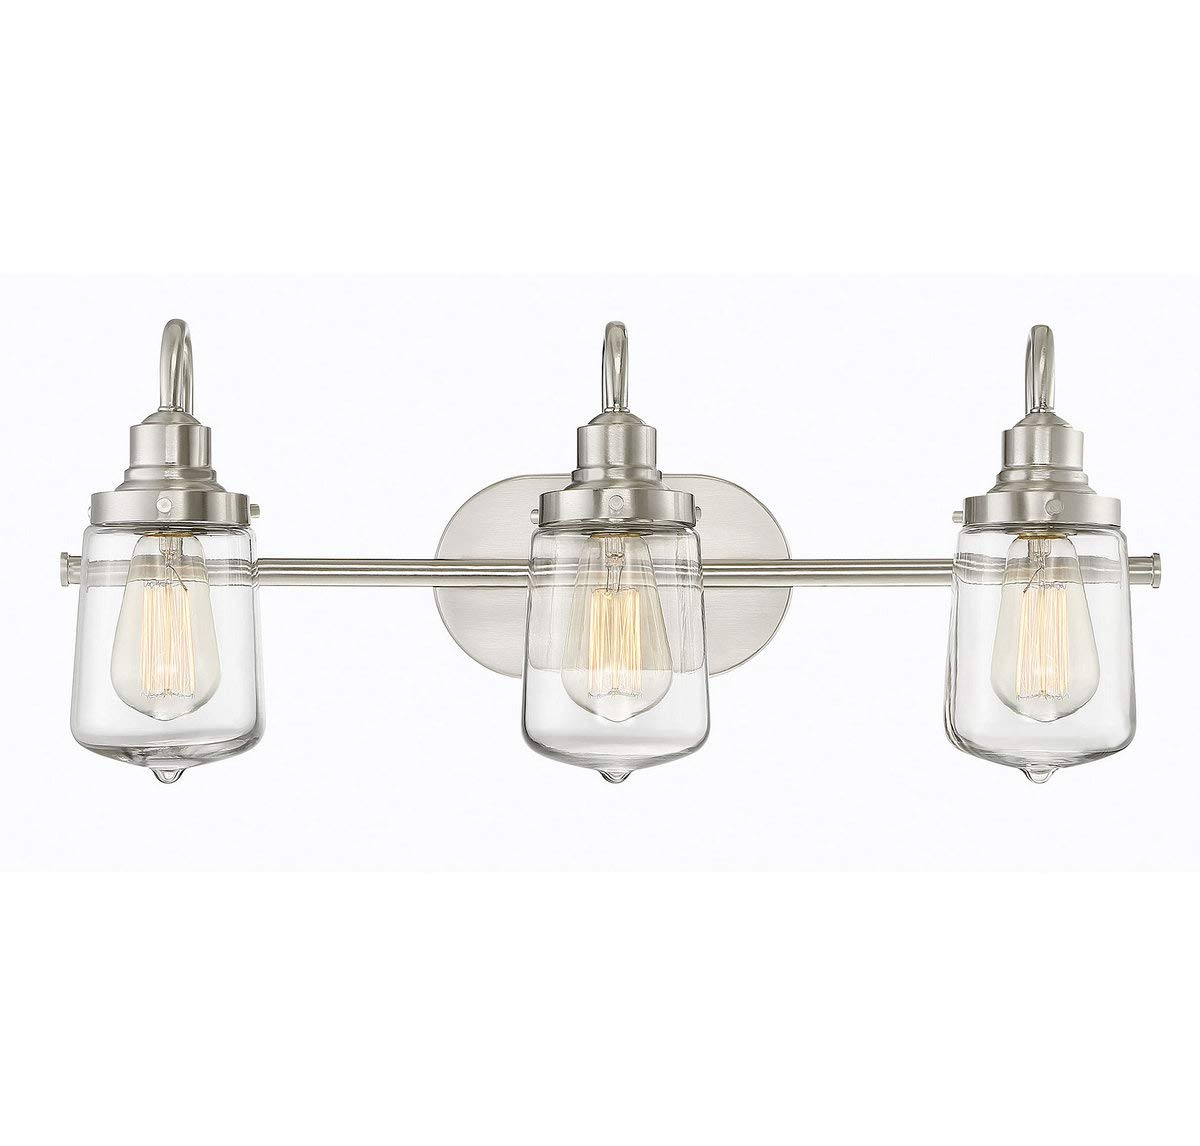 Trade Winds Lighting TW80017BN 3-Light Industrial Retro Vintage Transitional Loft Vanity Bath Light with Clear Glass in Brushed Nickel